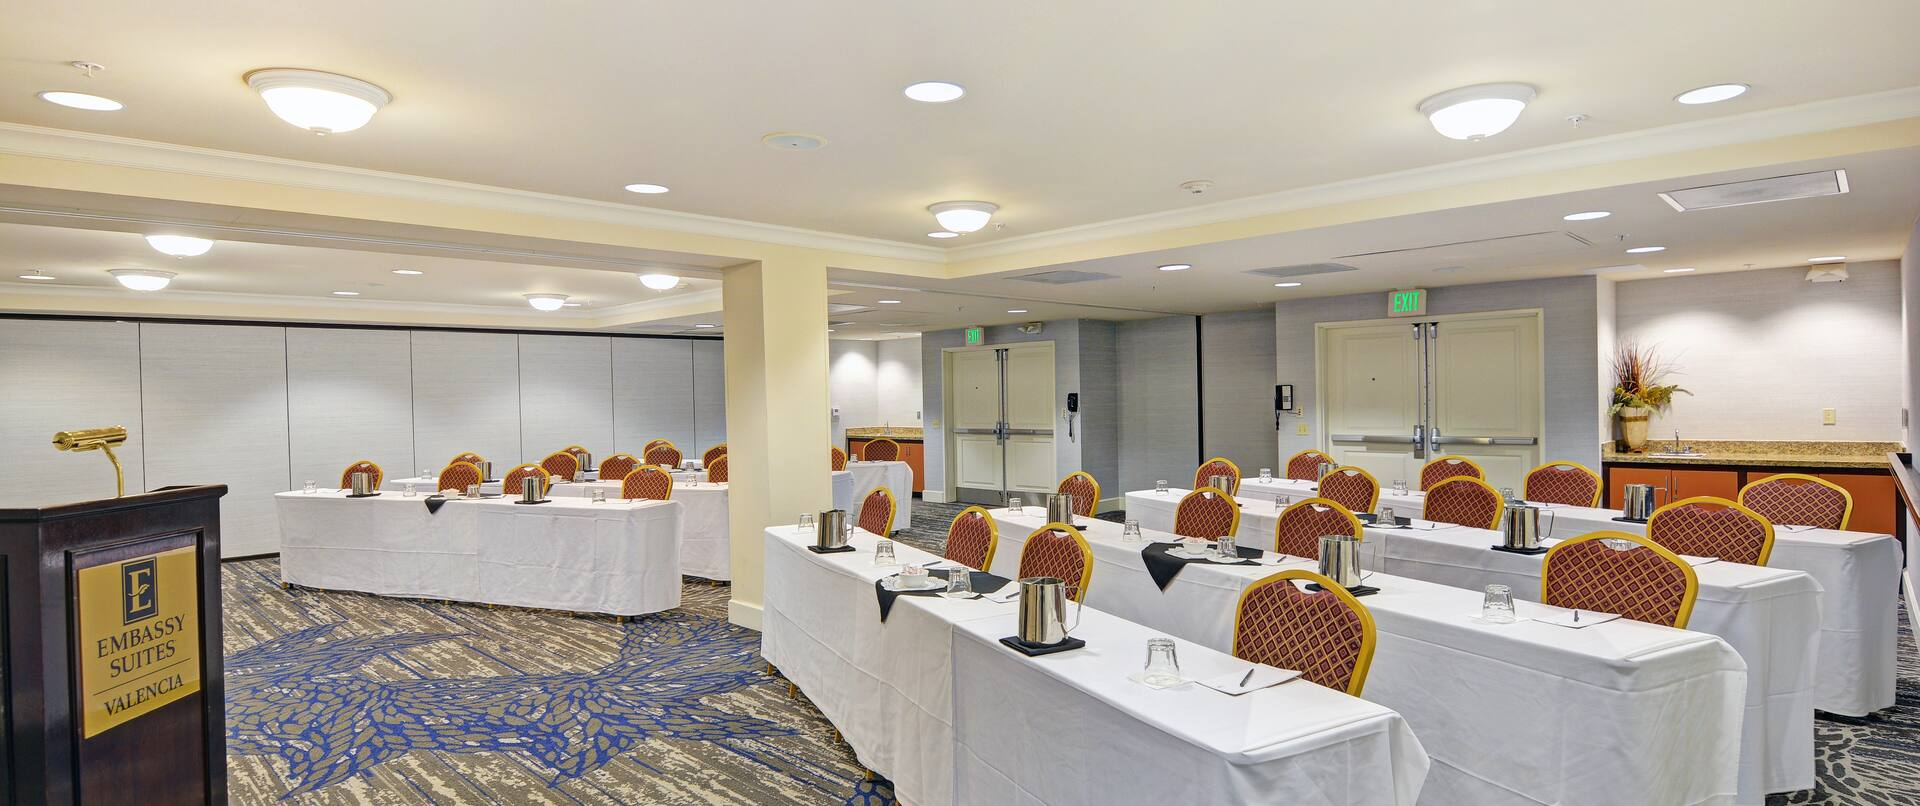 Meeting room with classroom setup, cloth-covered tables, chairs, and speaking podium